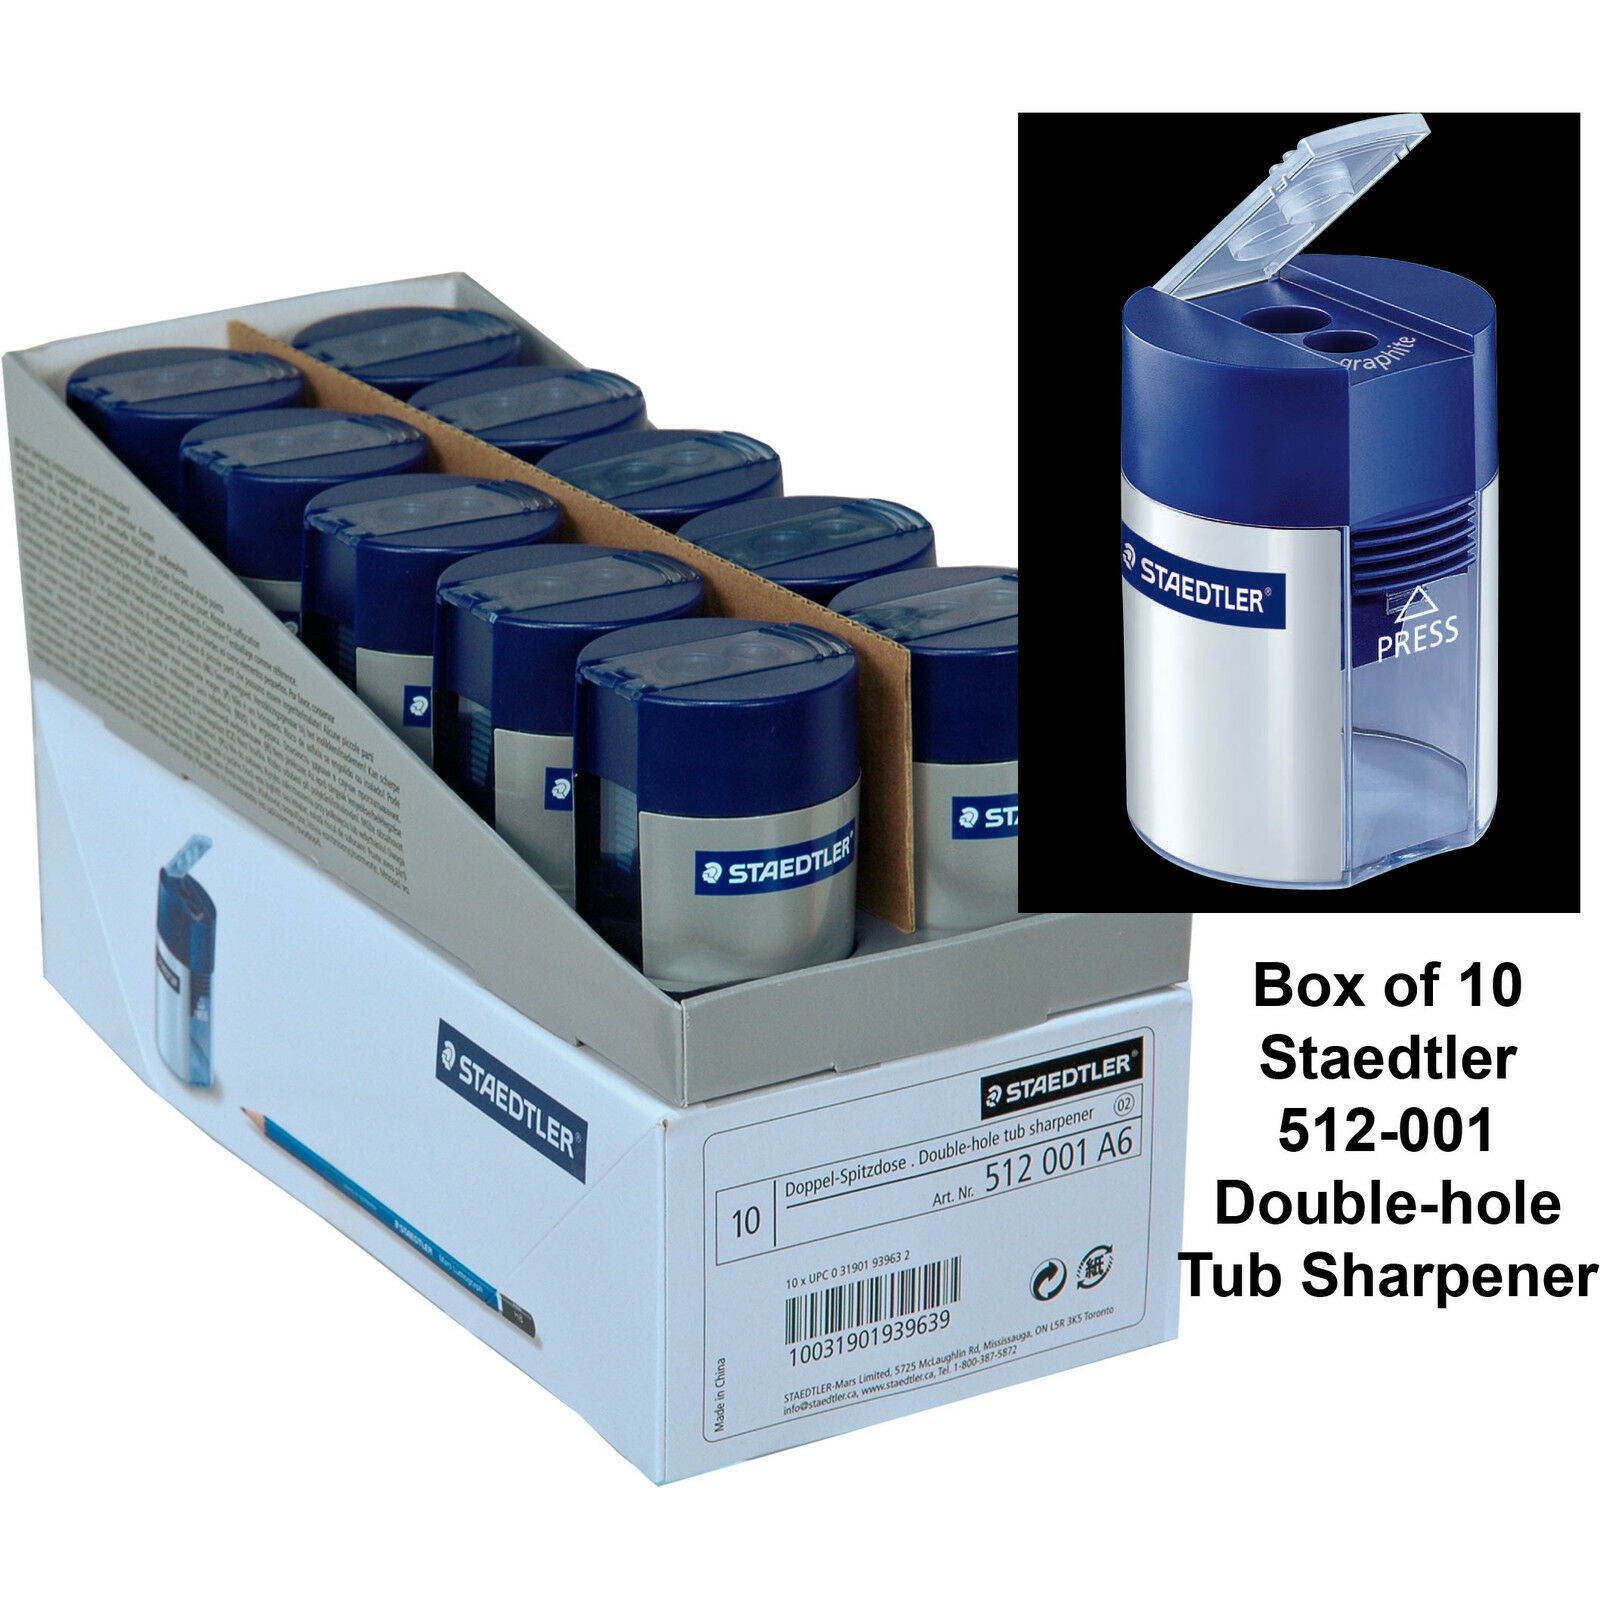 Box of 10, Staedtler 512-001 Double-Hole Tub Pencil Sharpener